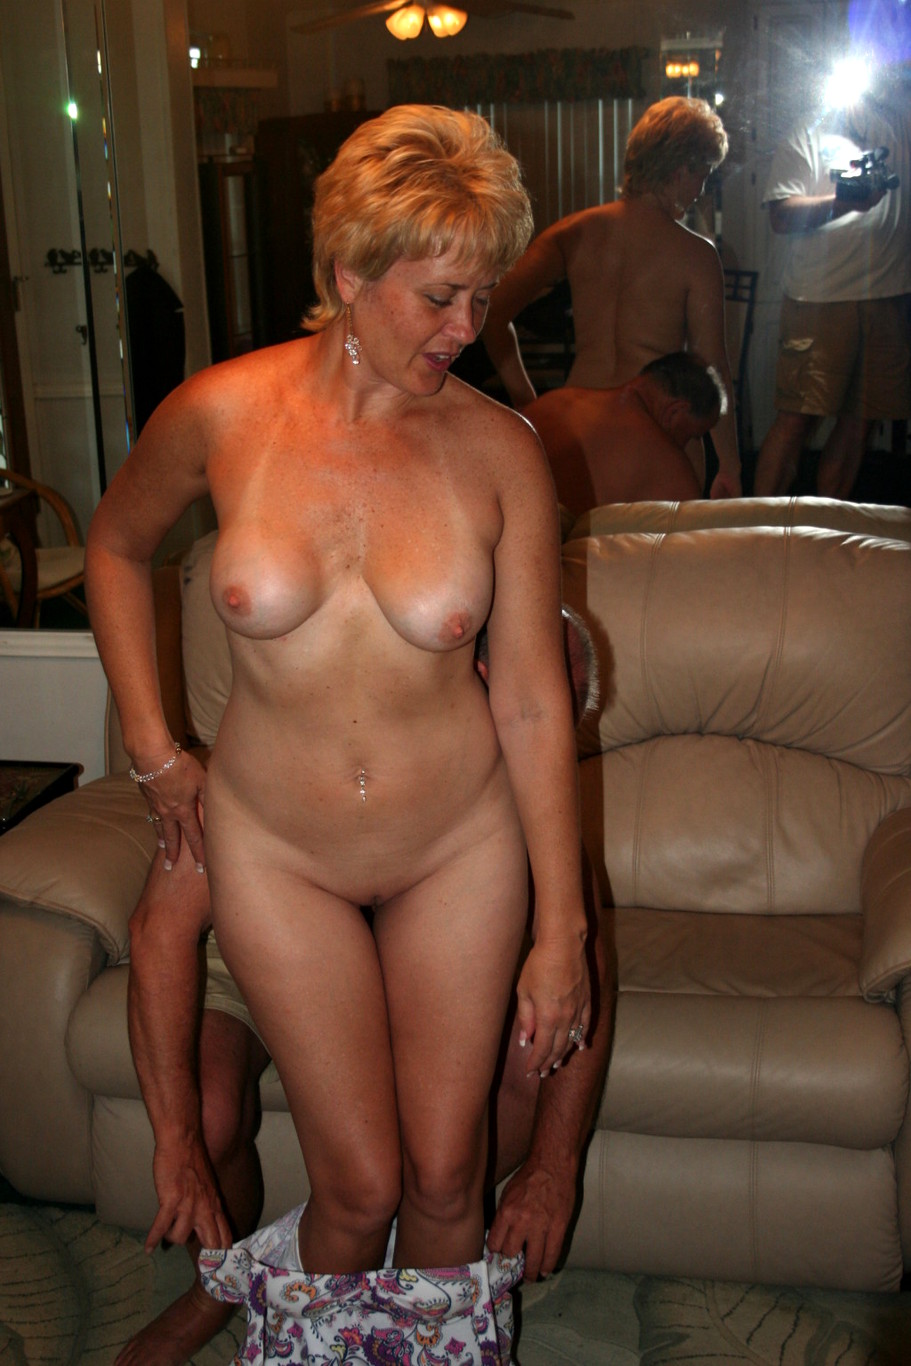 Sex Hd Mobile Pics Real Tampa Swingers Realtampaswingers -6699